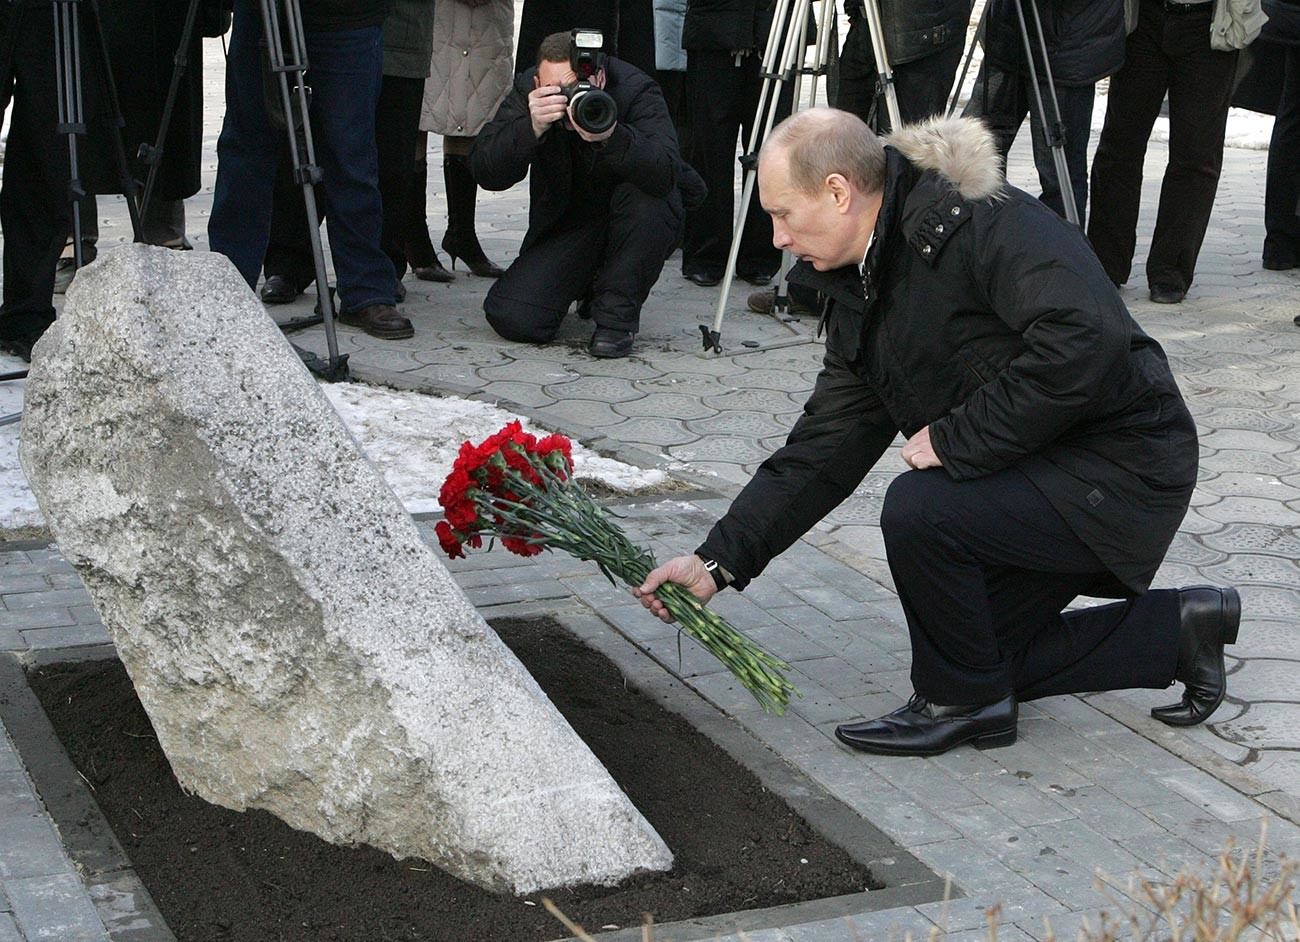 Vladimir Putin, President of the Russian Federation, commemorating the victims of the 1962 shooting in Novocherkassk